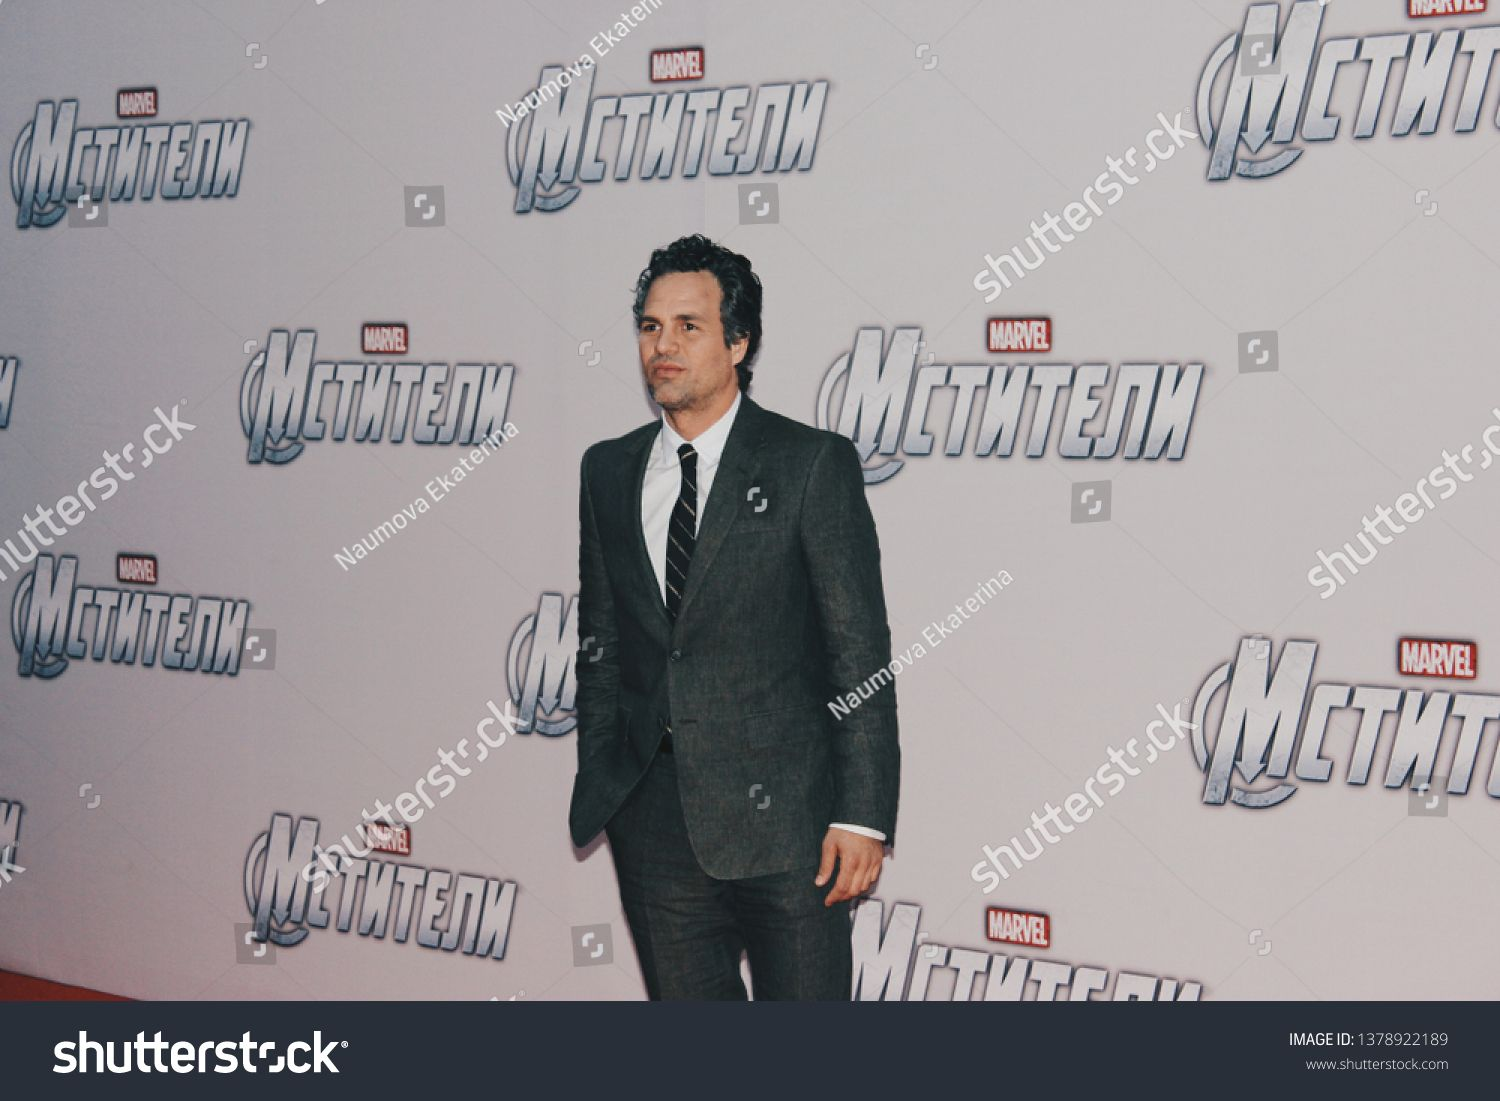 Moscow Russia April 17 2012 Mark Ruffalo At The Avengers Premiere At Cinema October Red Carpet Sign Says Ad Photo Editing Moscow Russia Stock Photos